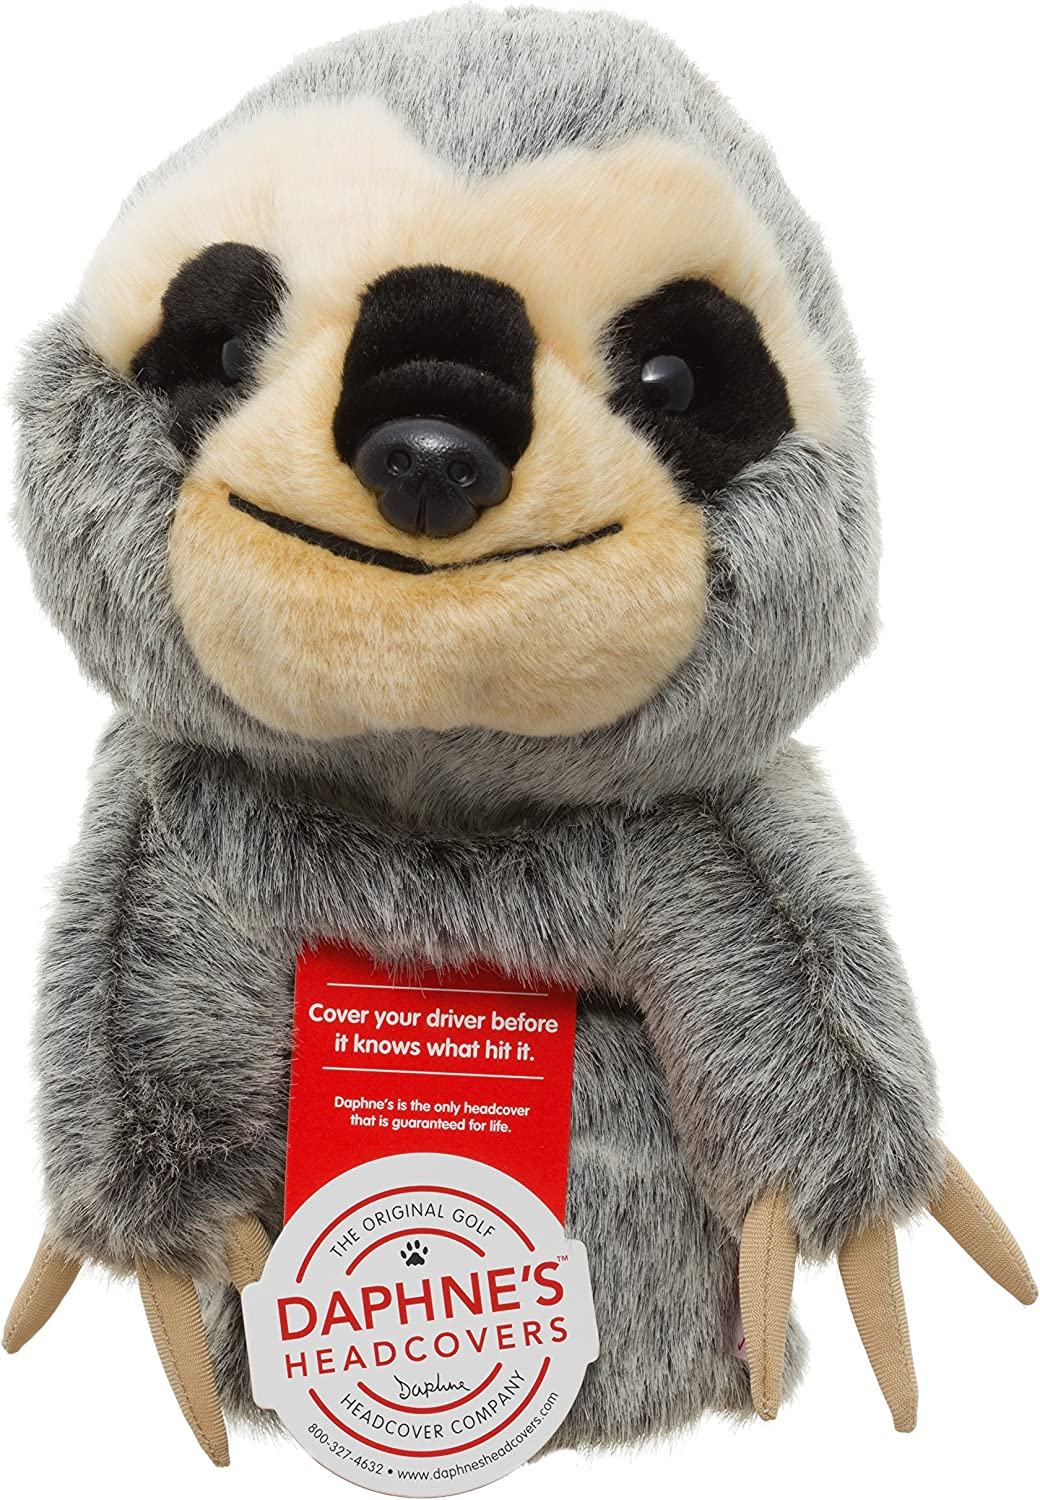 Daphne's Headcovers Sloth Golf Headcover : Sports & Outdoors